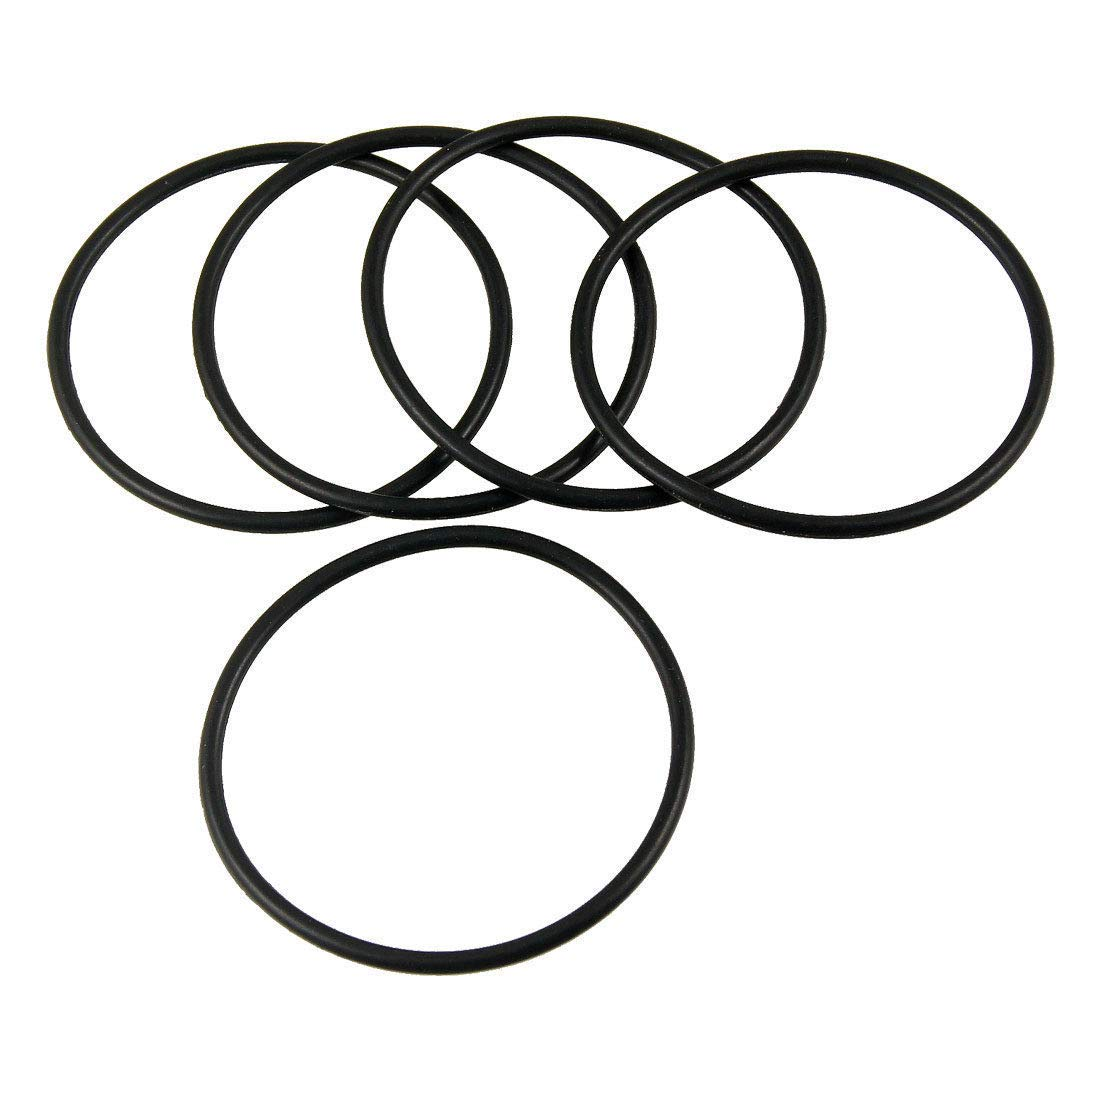 Pro-Parts 151121 OR-38 O-Ring Gasket Seal Replacement Culligan Water Filter Housing 5PCS//Pack